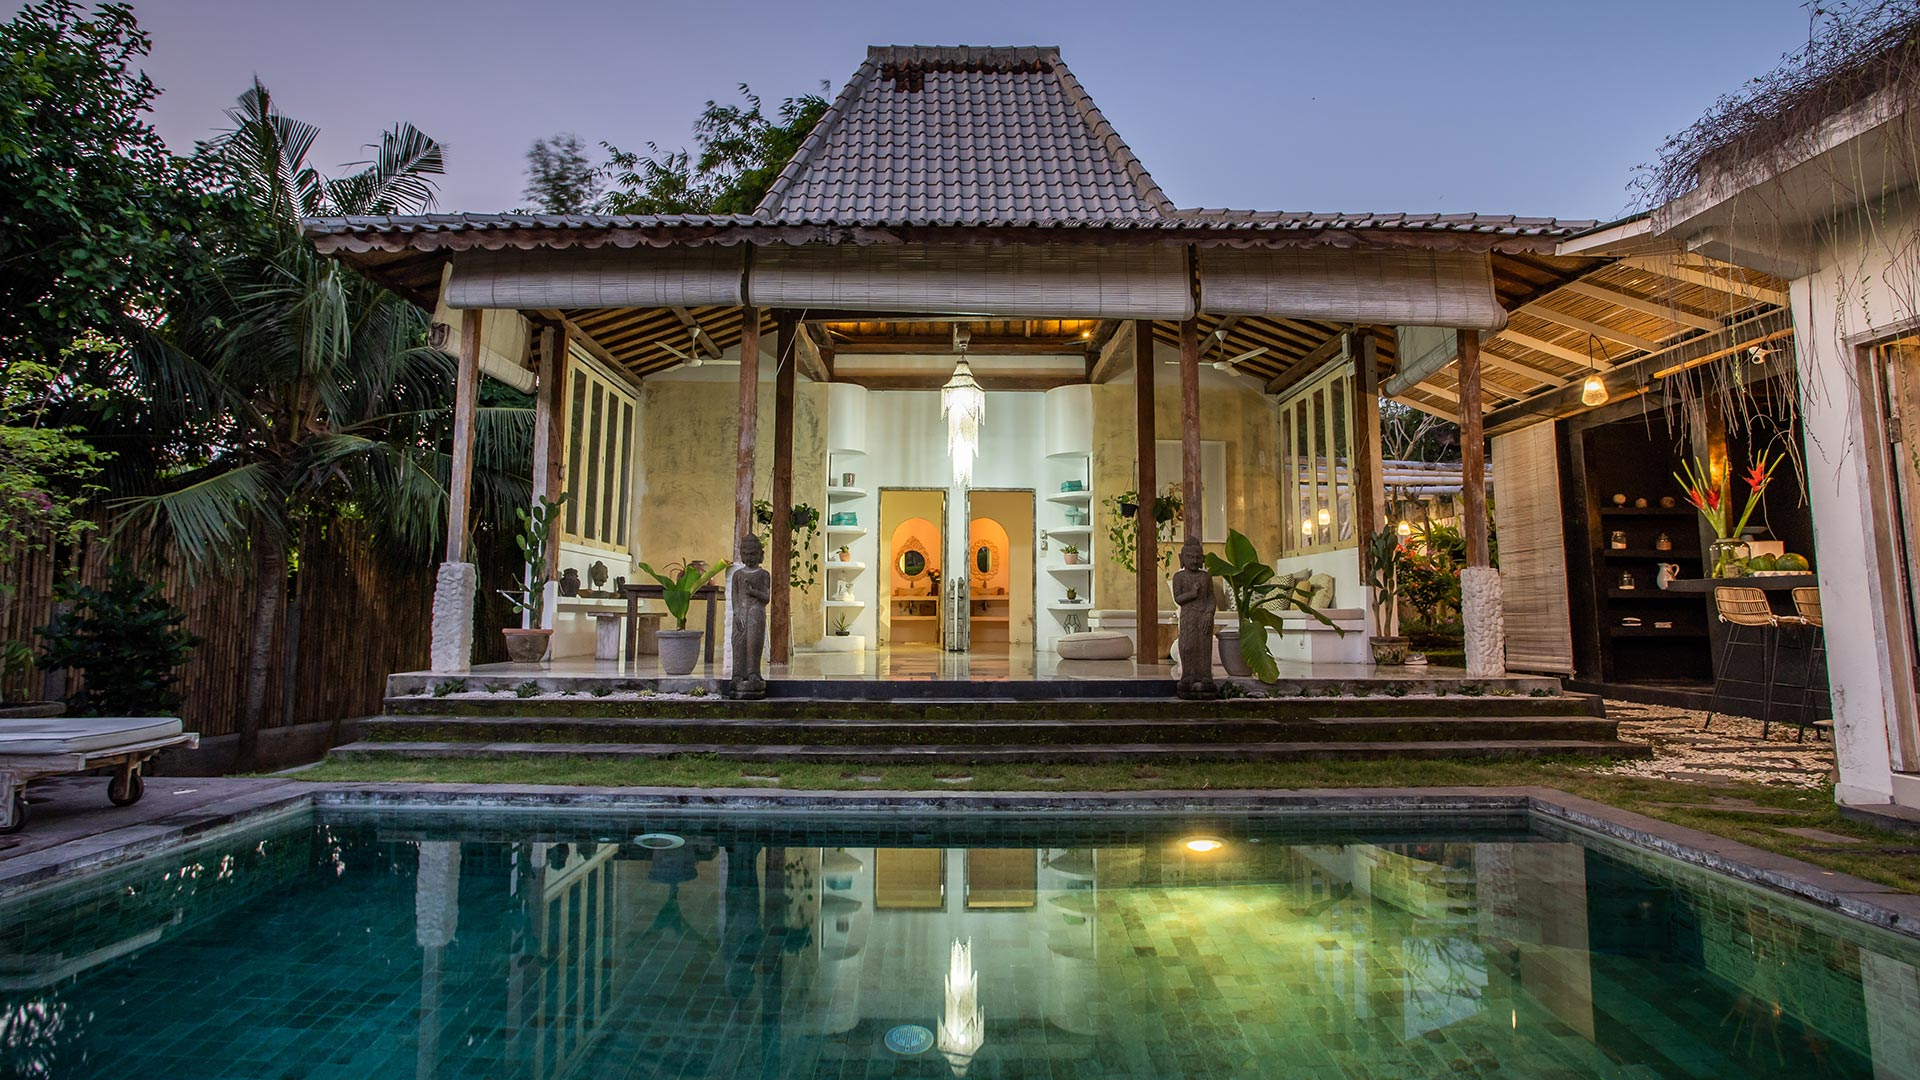 Situated in the middle of Canggu village, this villa has a classic design with joglo shapped main house. Medium sized square pool...